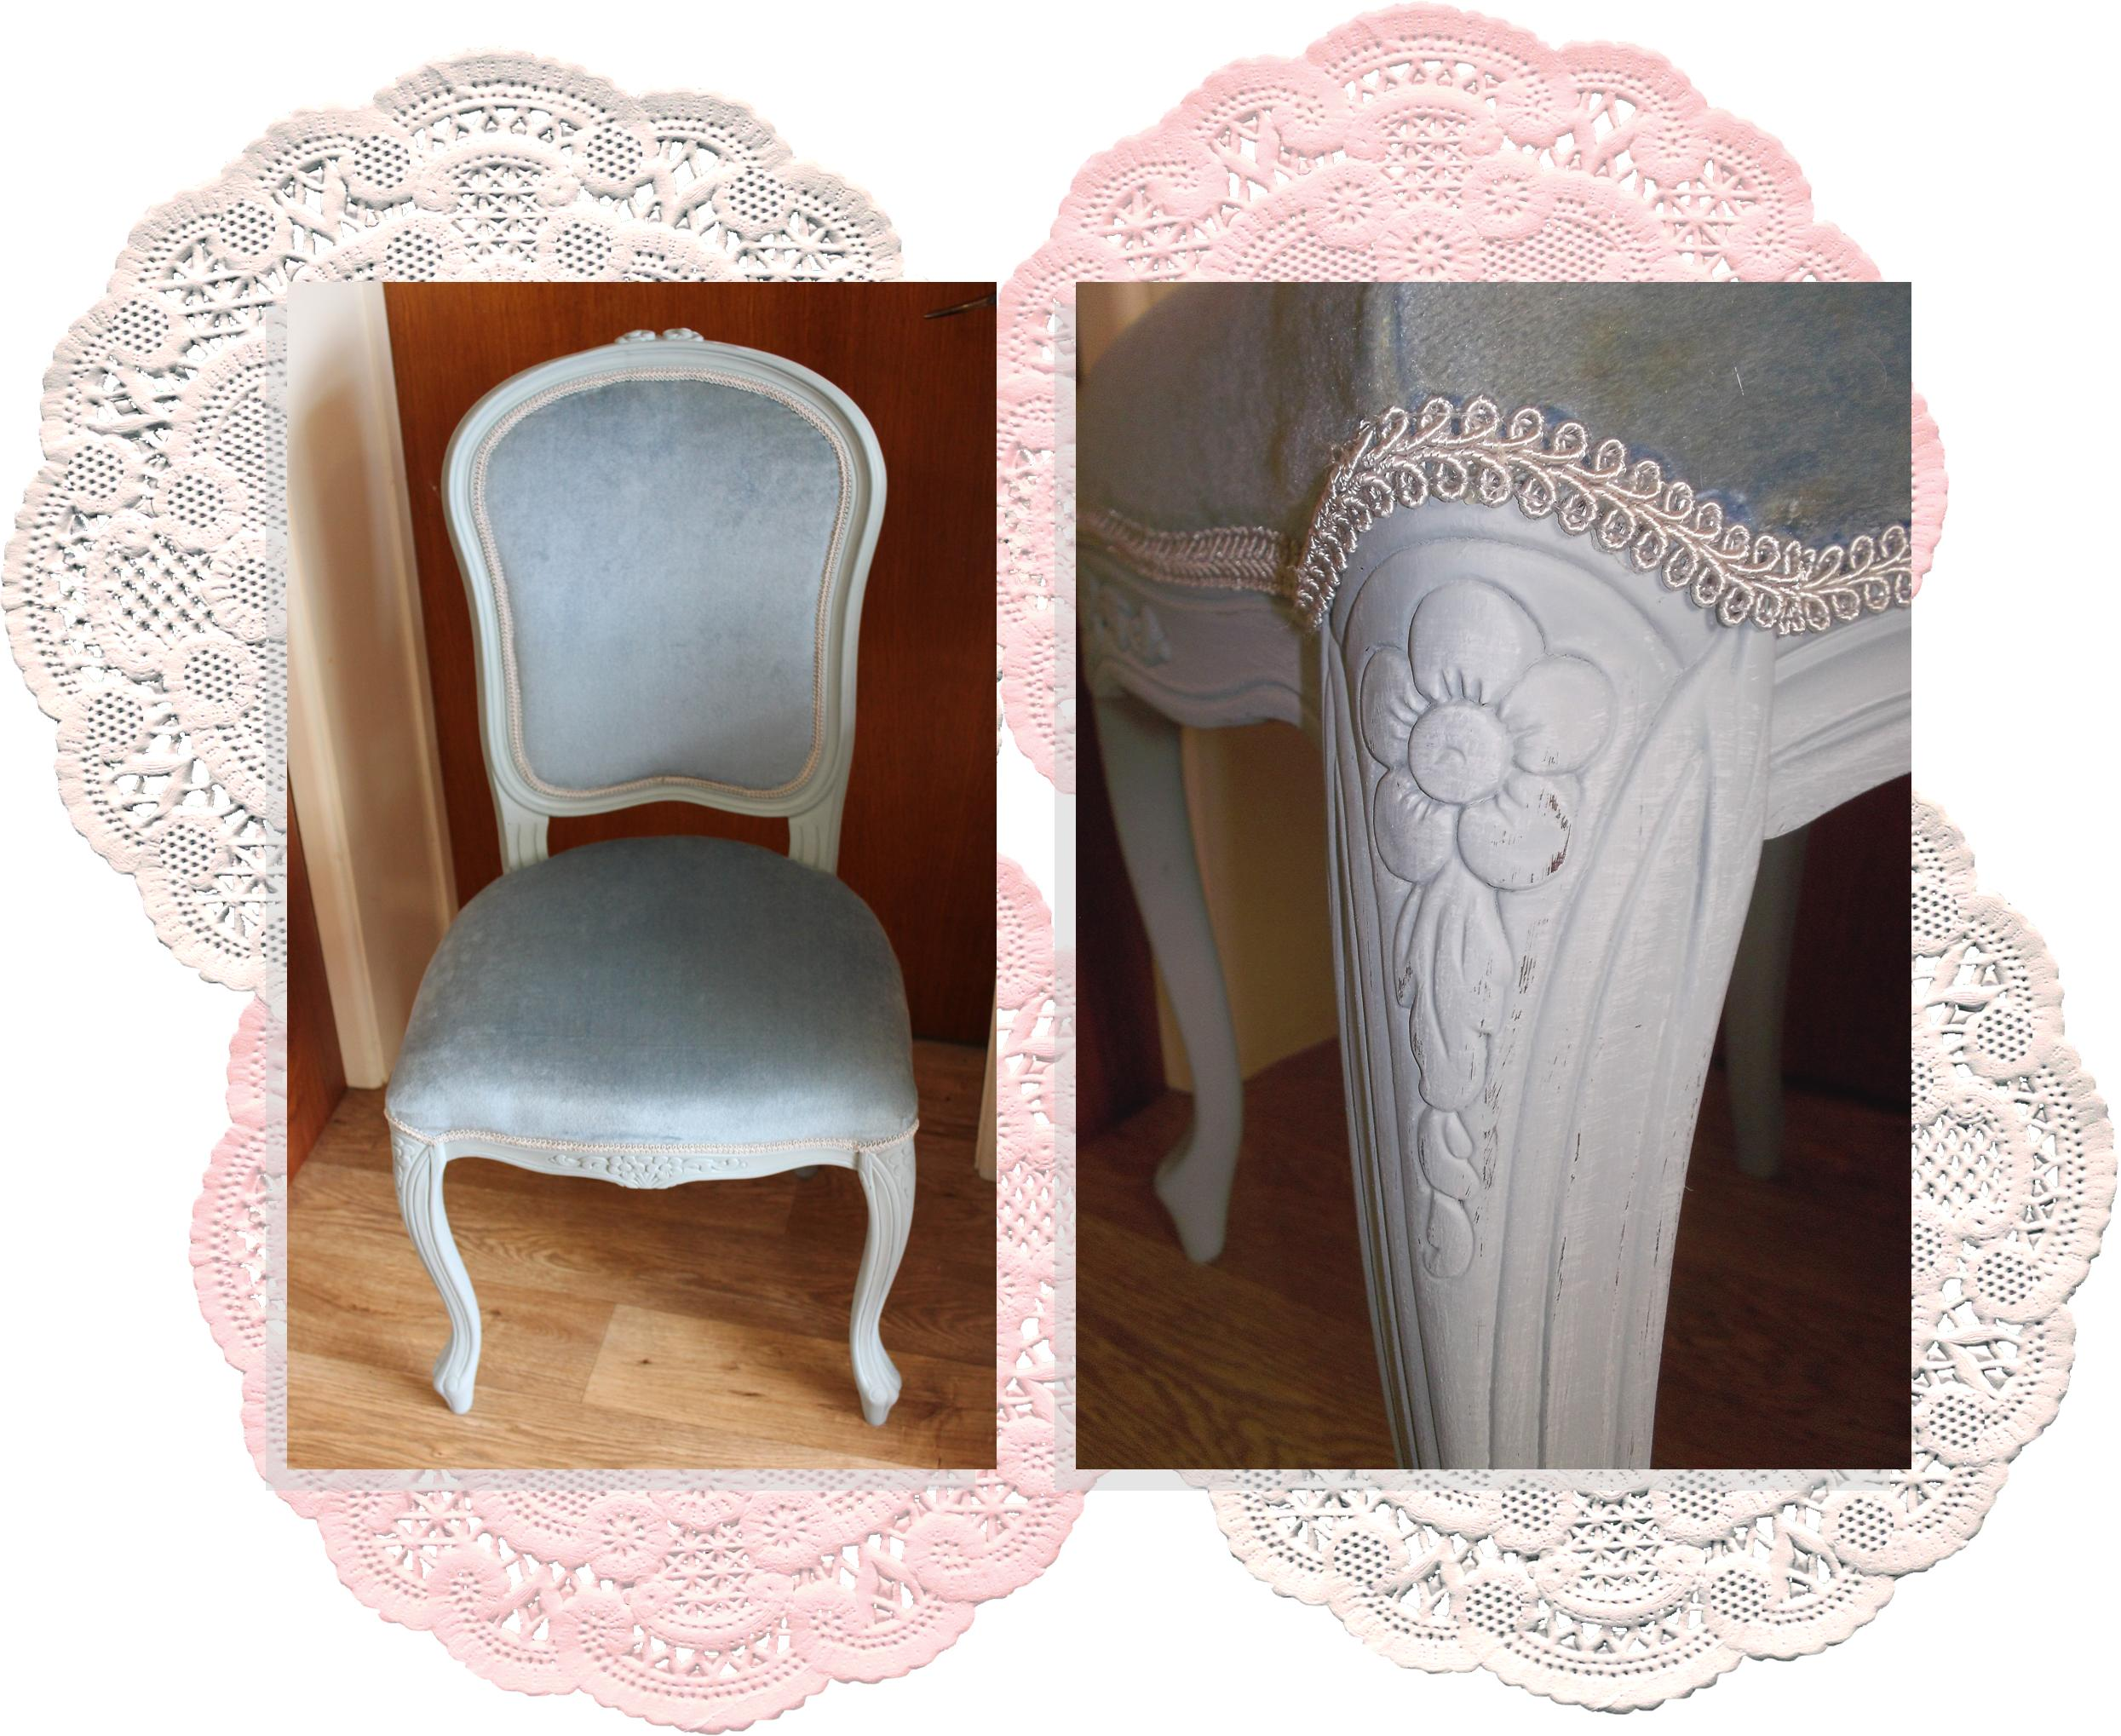 dining room chair covers dunelm sears canada a diy project  renovating an old